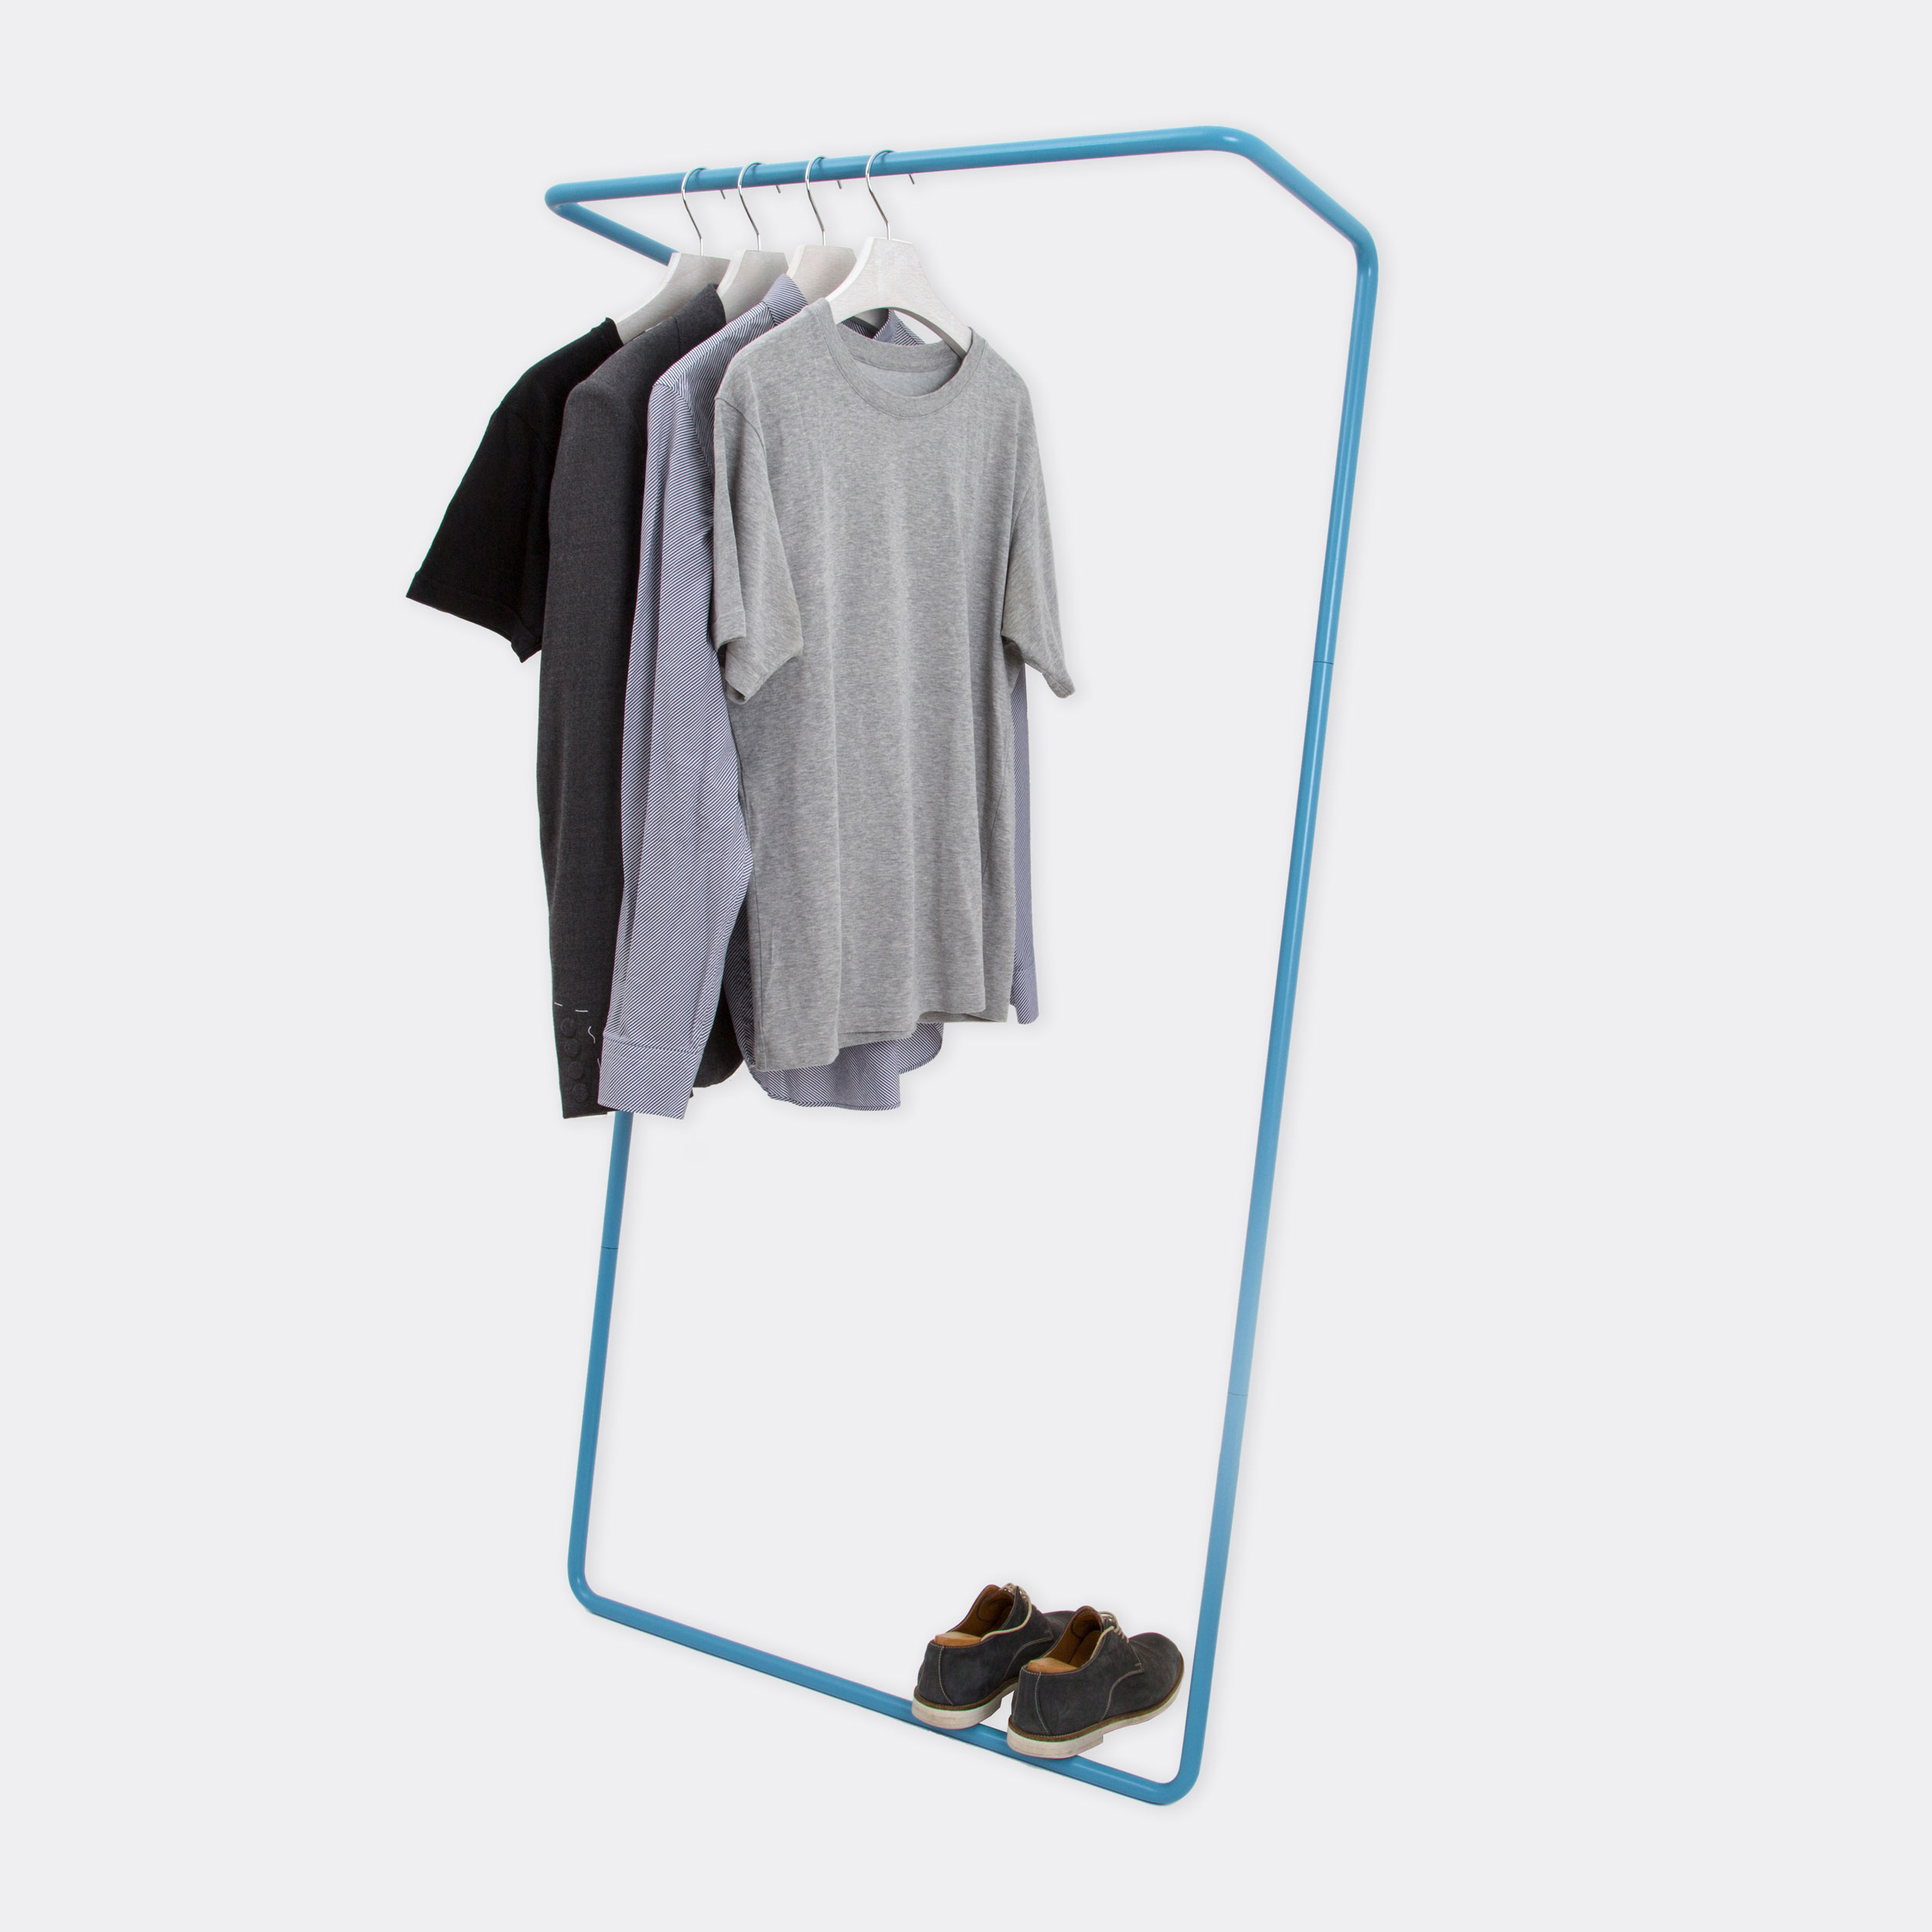 clean product shot of the clothes rail in blue